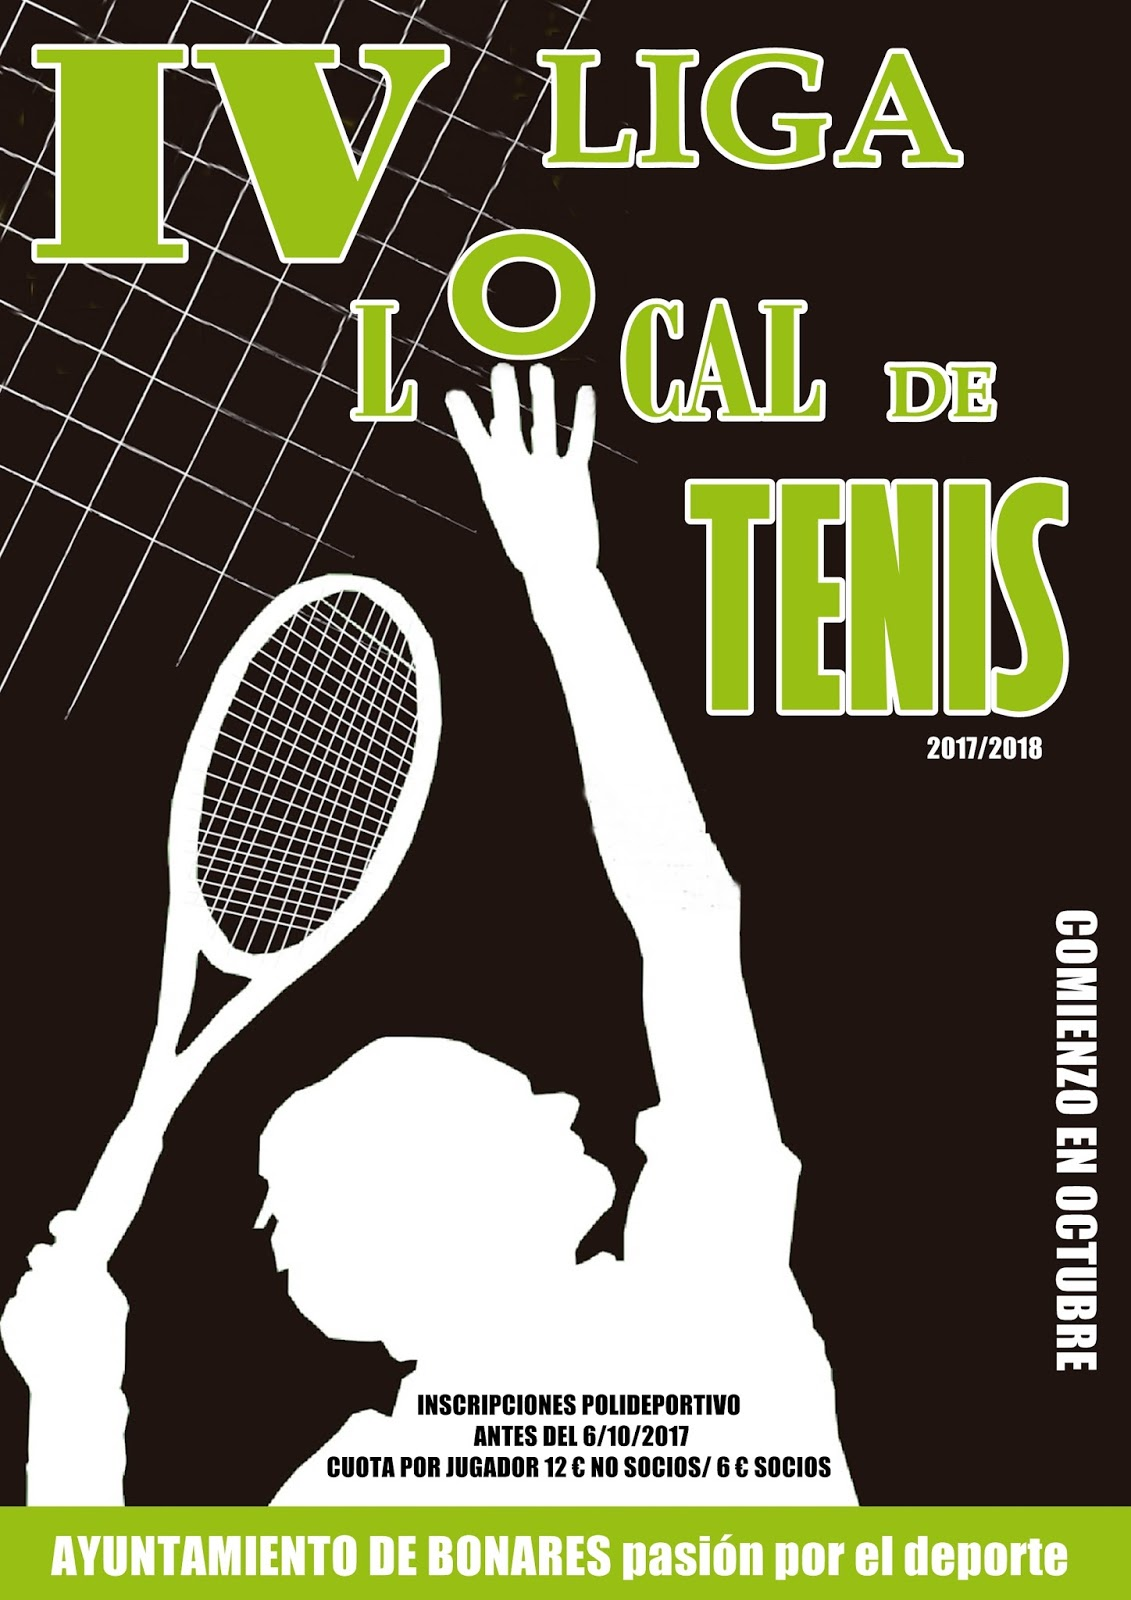 IV LIGA LOCAL DE TENIS